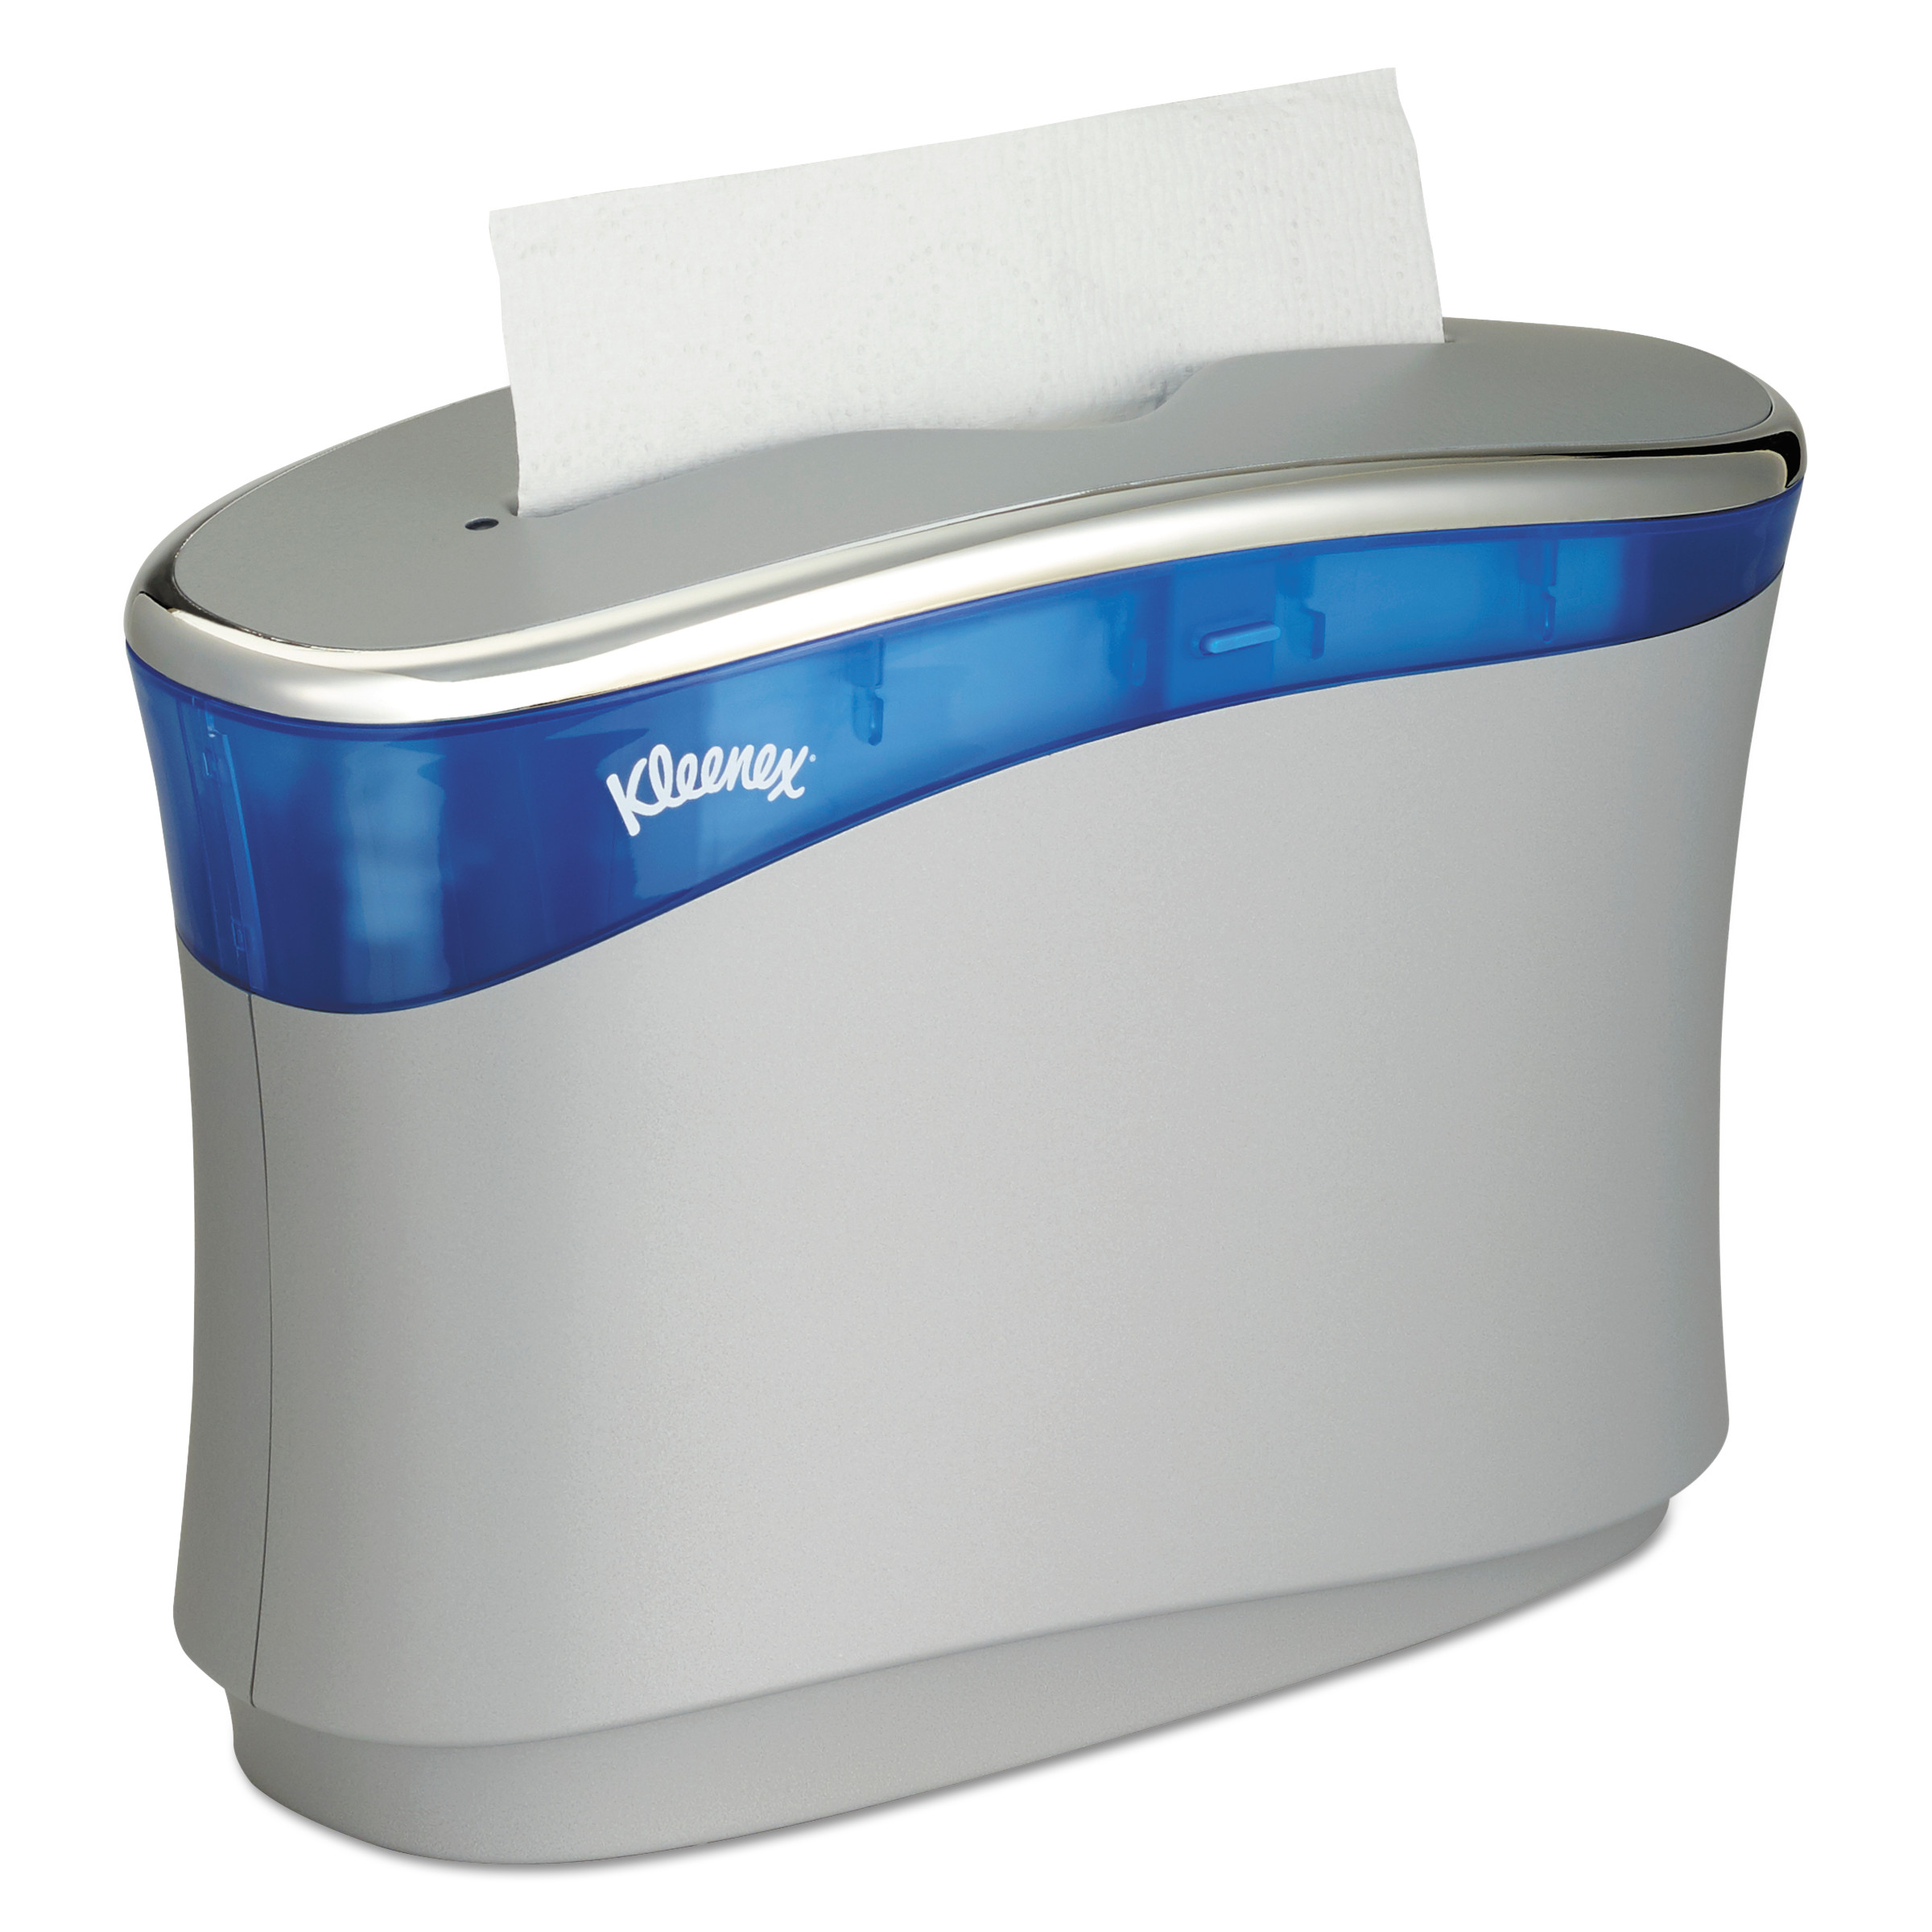 Kleenex Reveal Countertop Folded Towel Dispenser, 13.3x9x5.2, Soft Gray/Translucent Blue